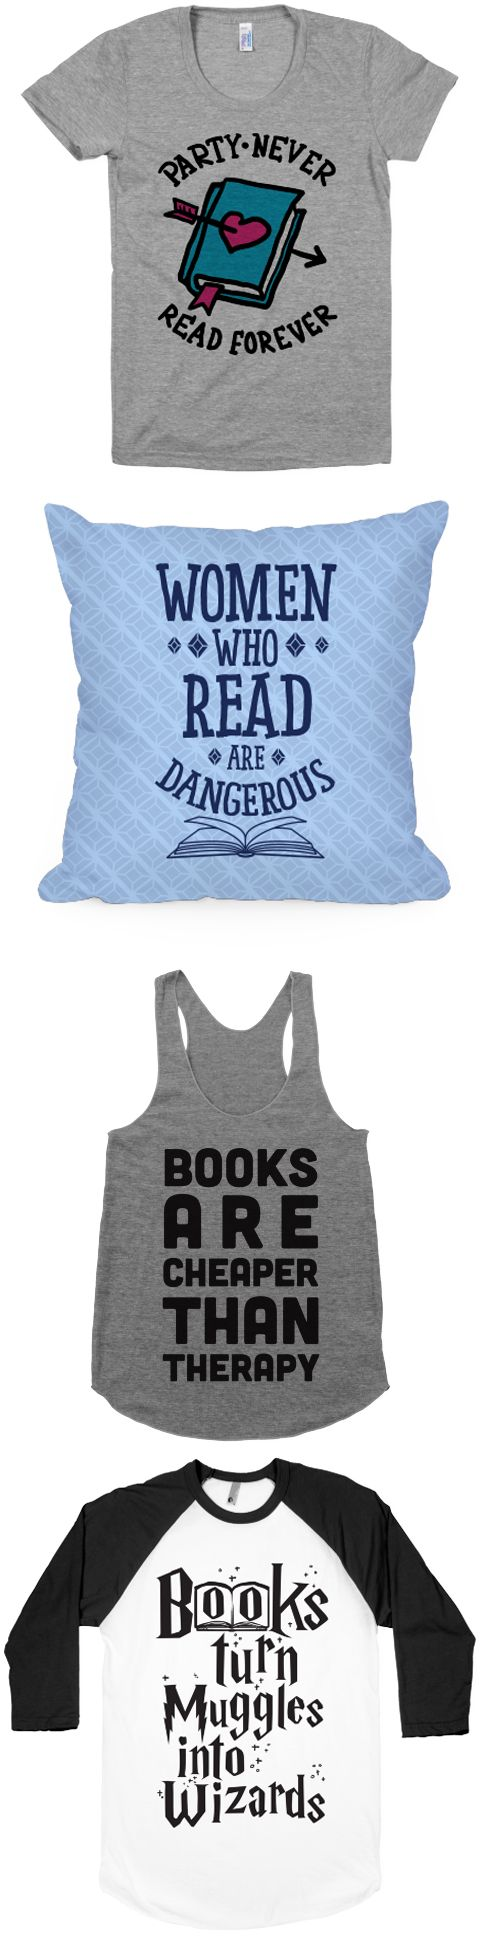 Book nerds have more fun.